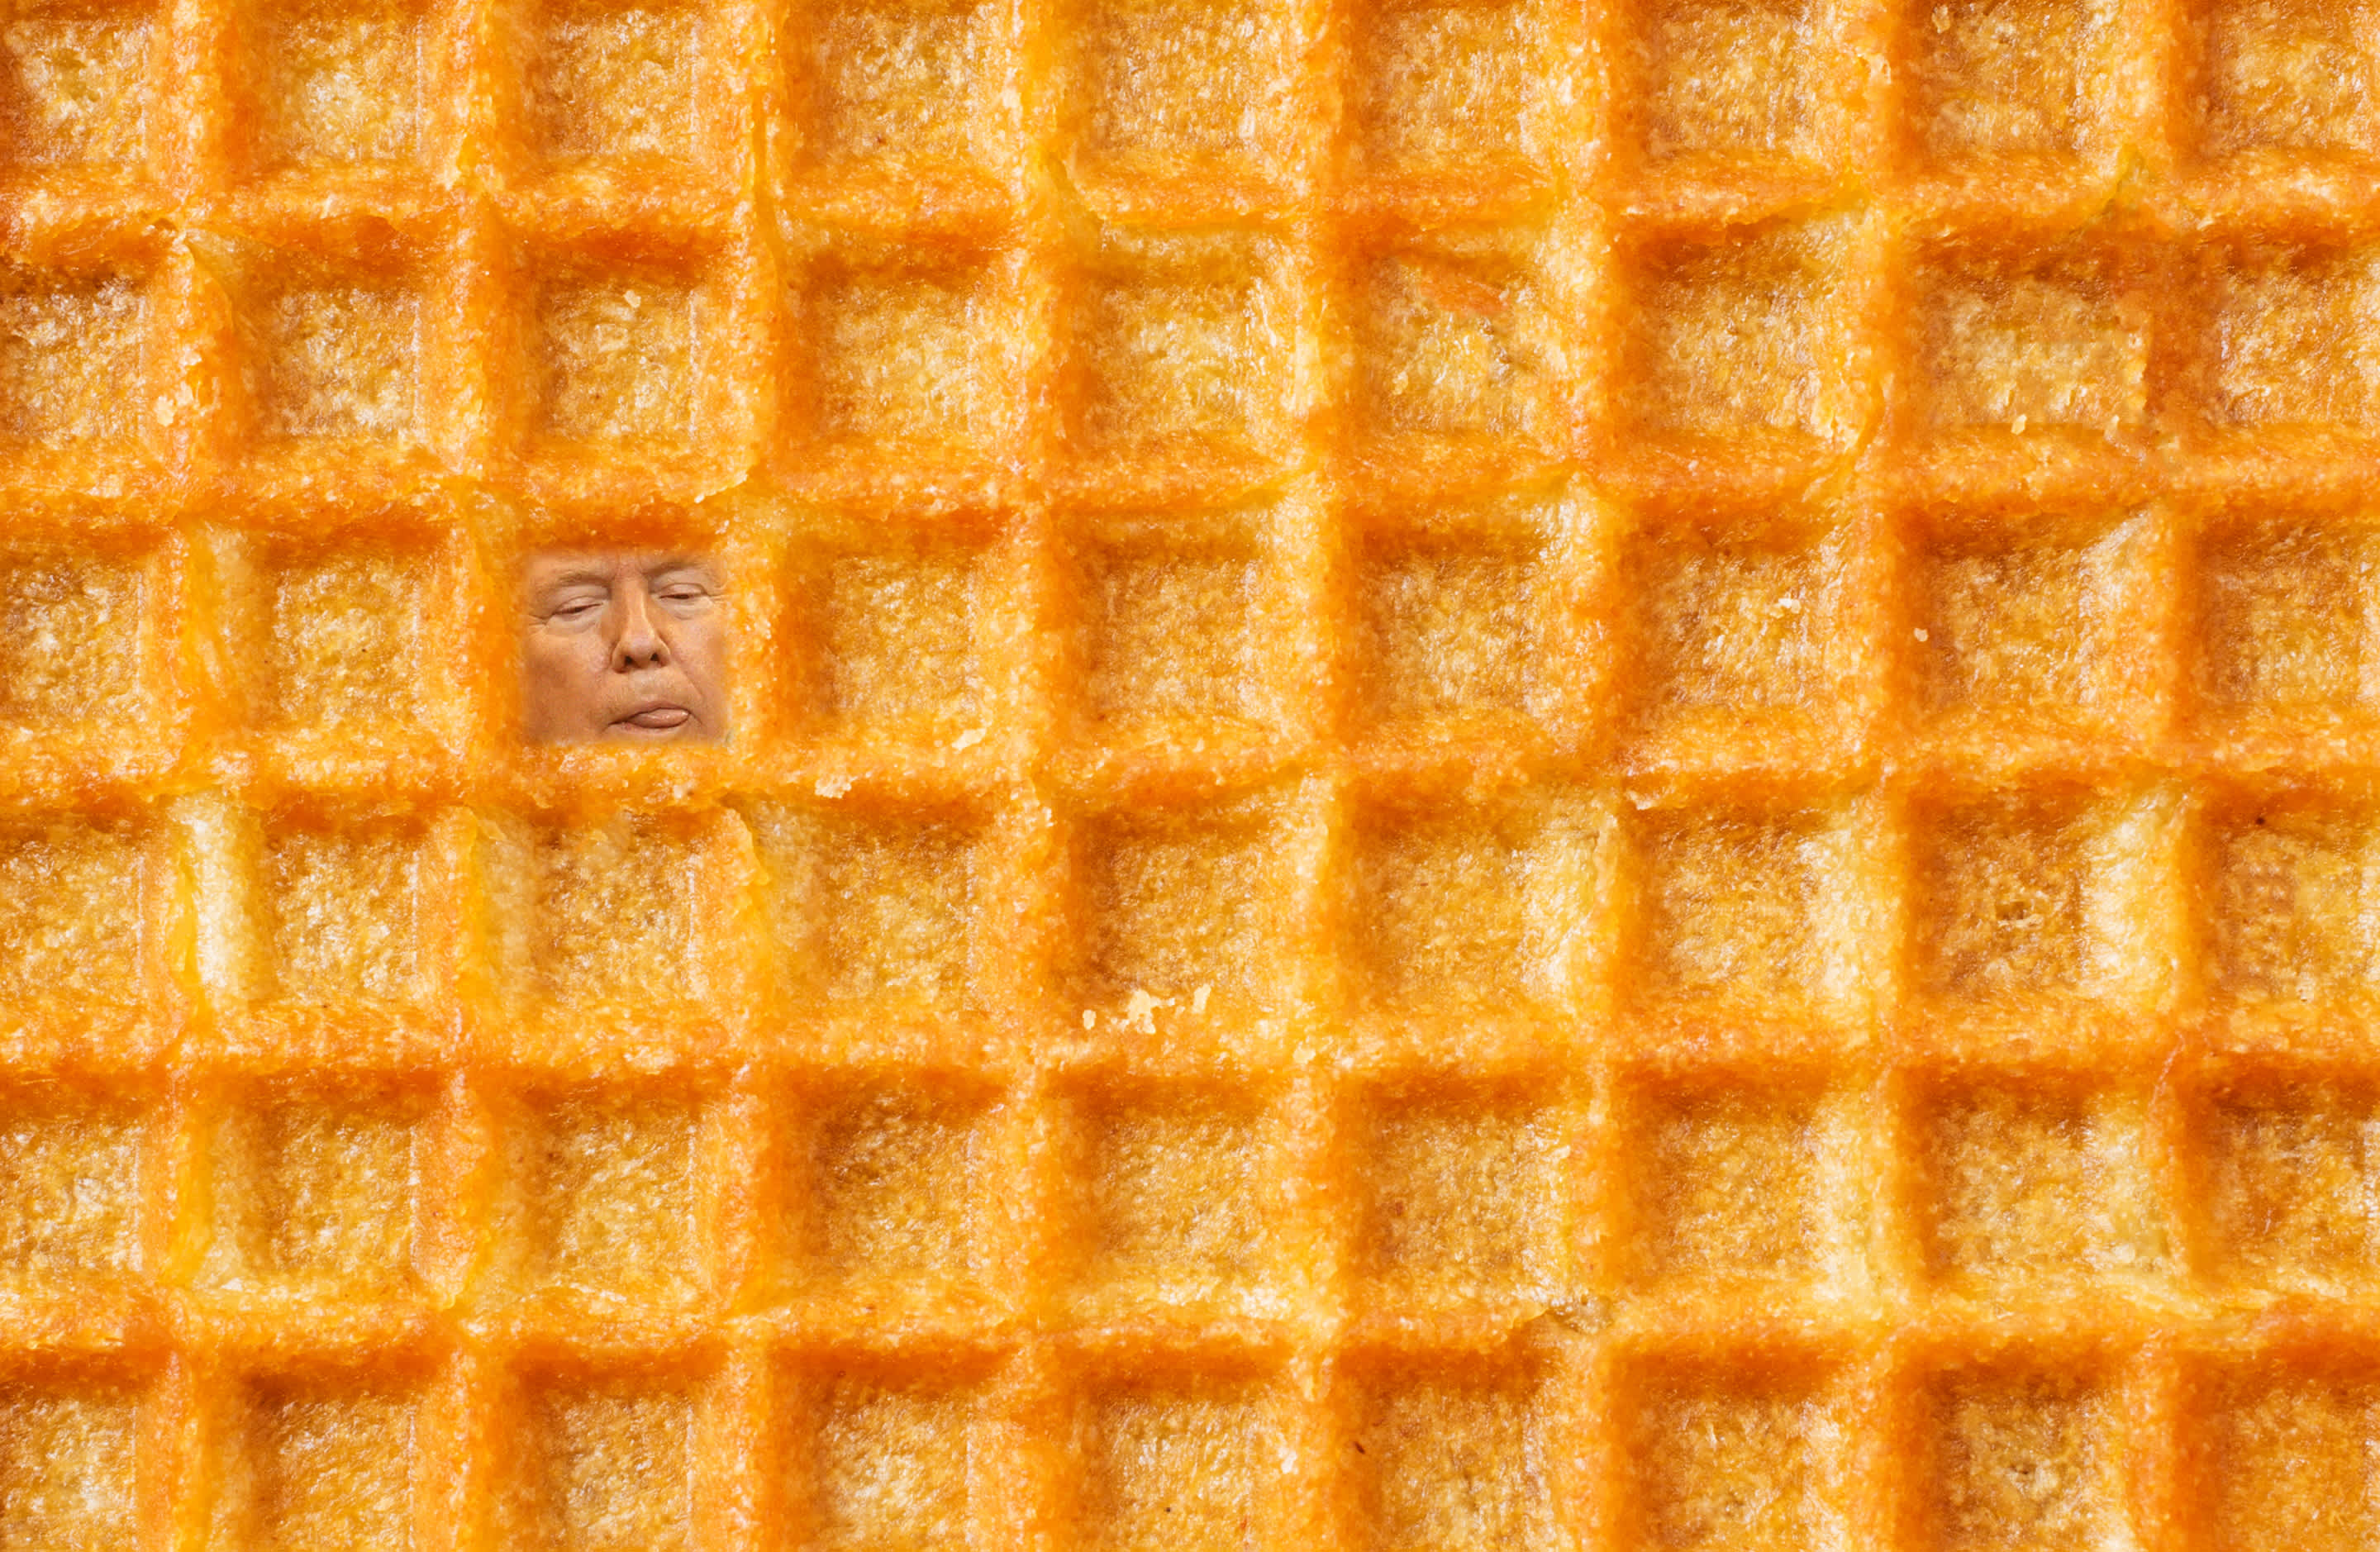 Donald Trump's face embedded in a waffle